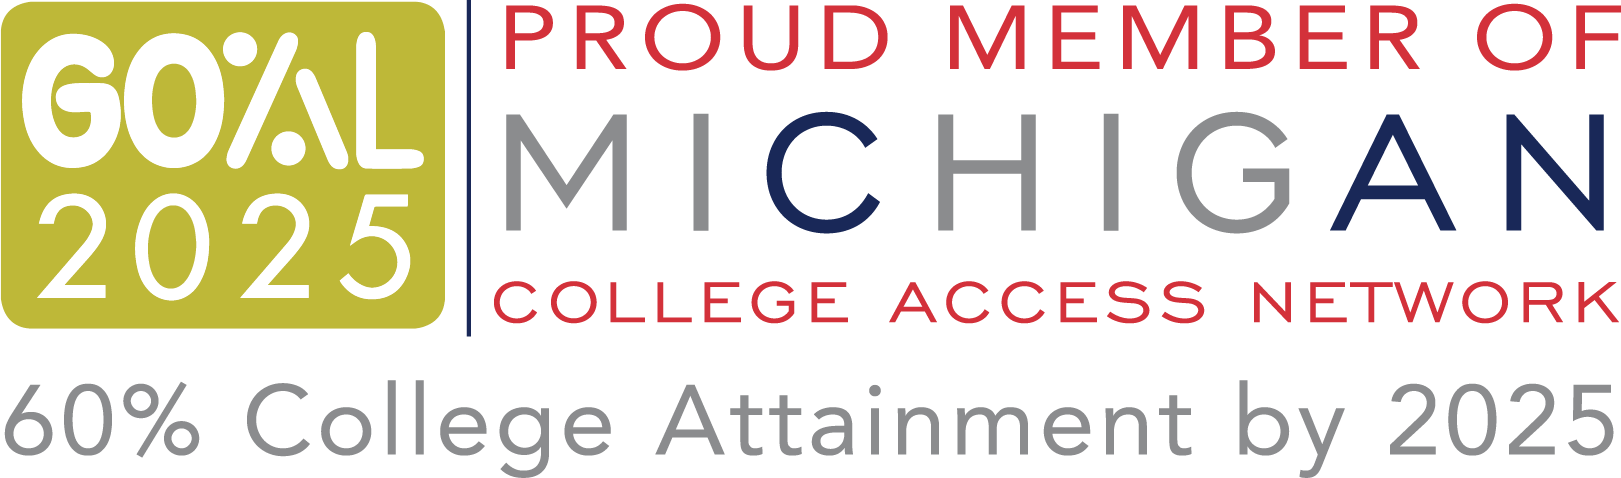 Proud member of Michigan College Access Network (MCAN)